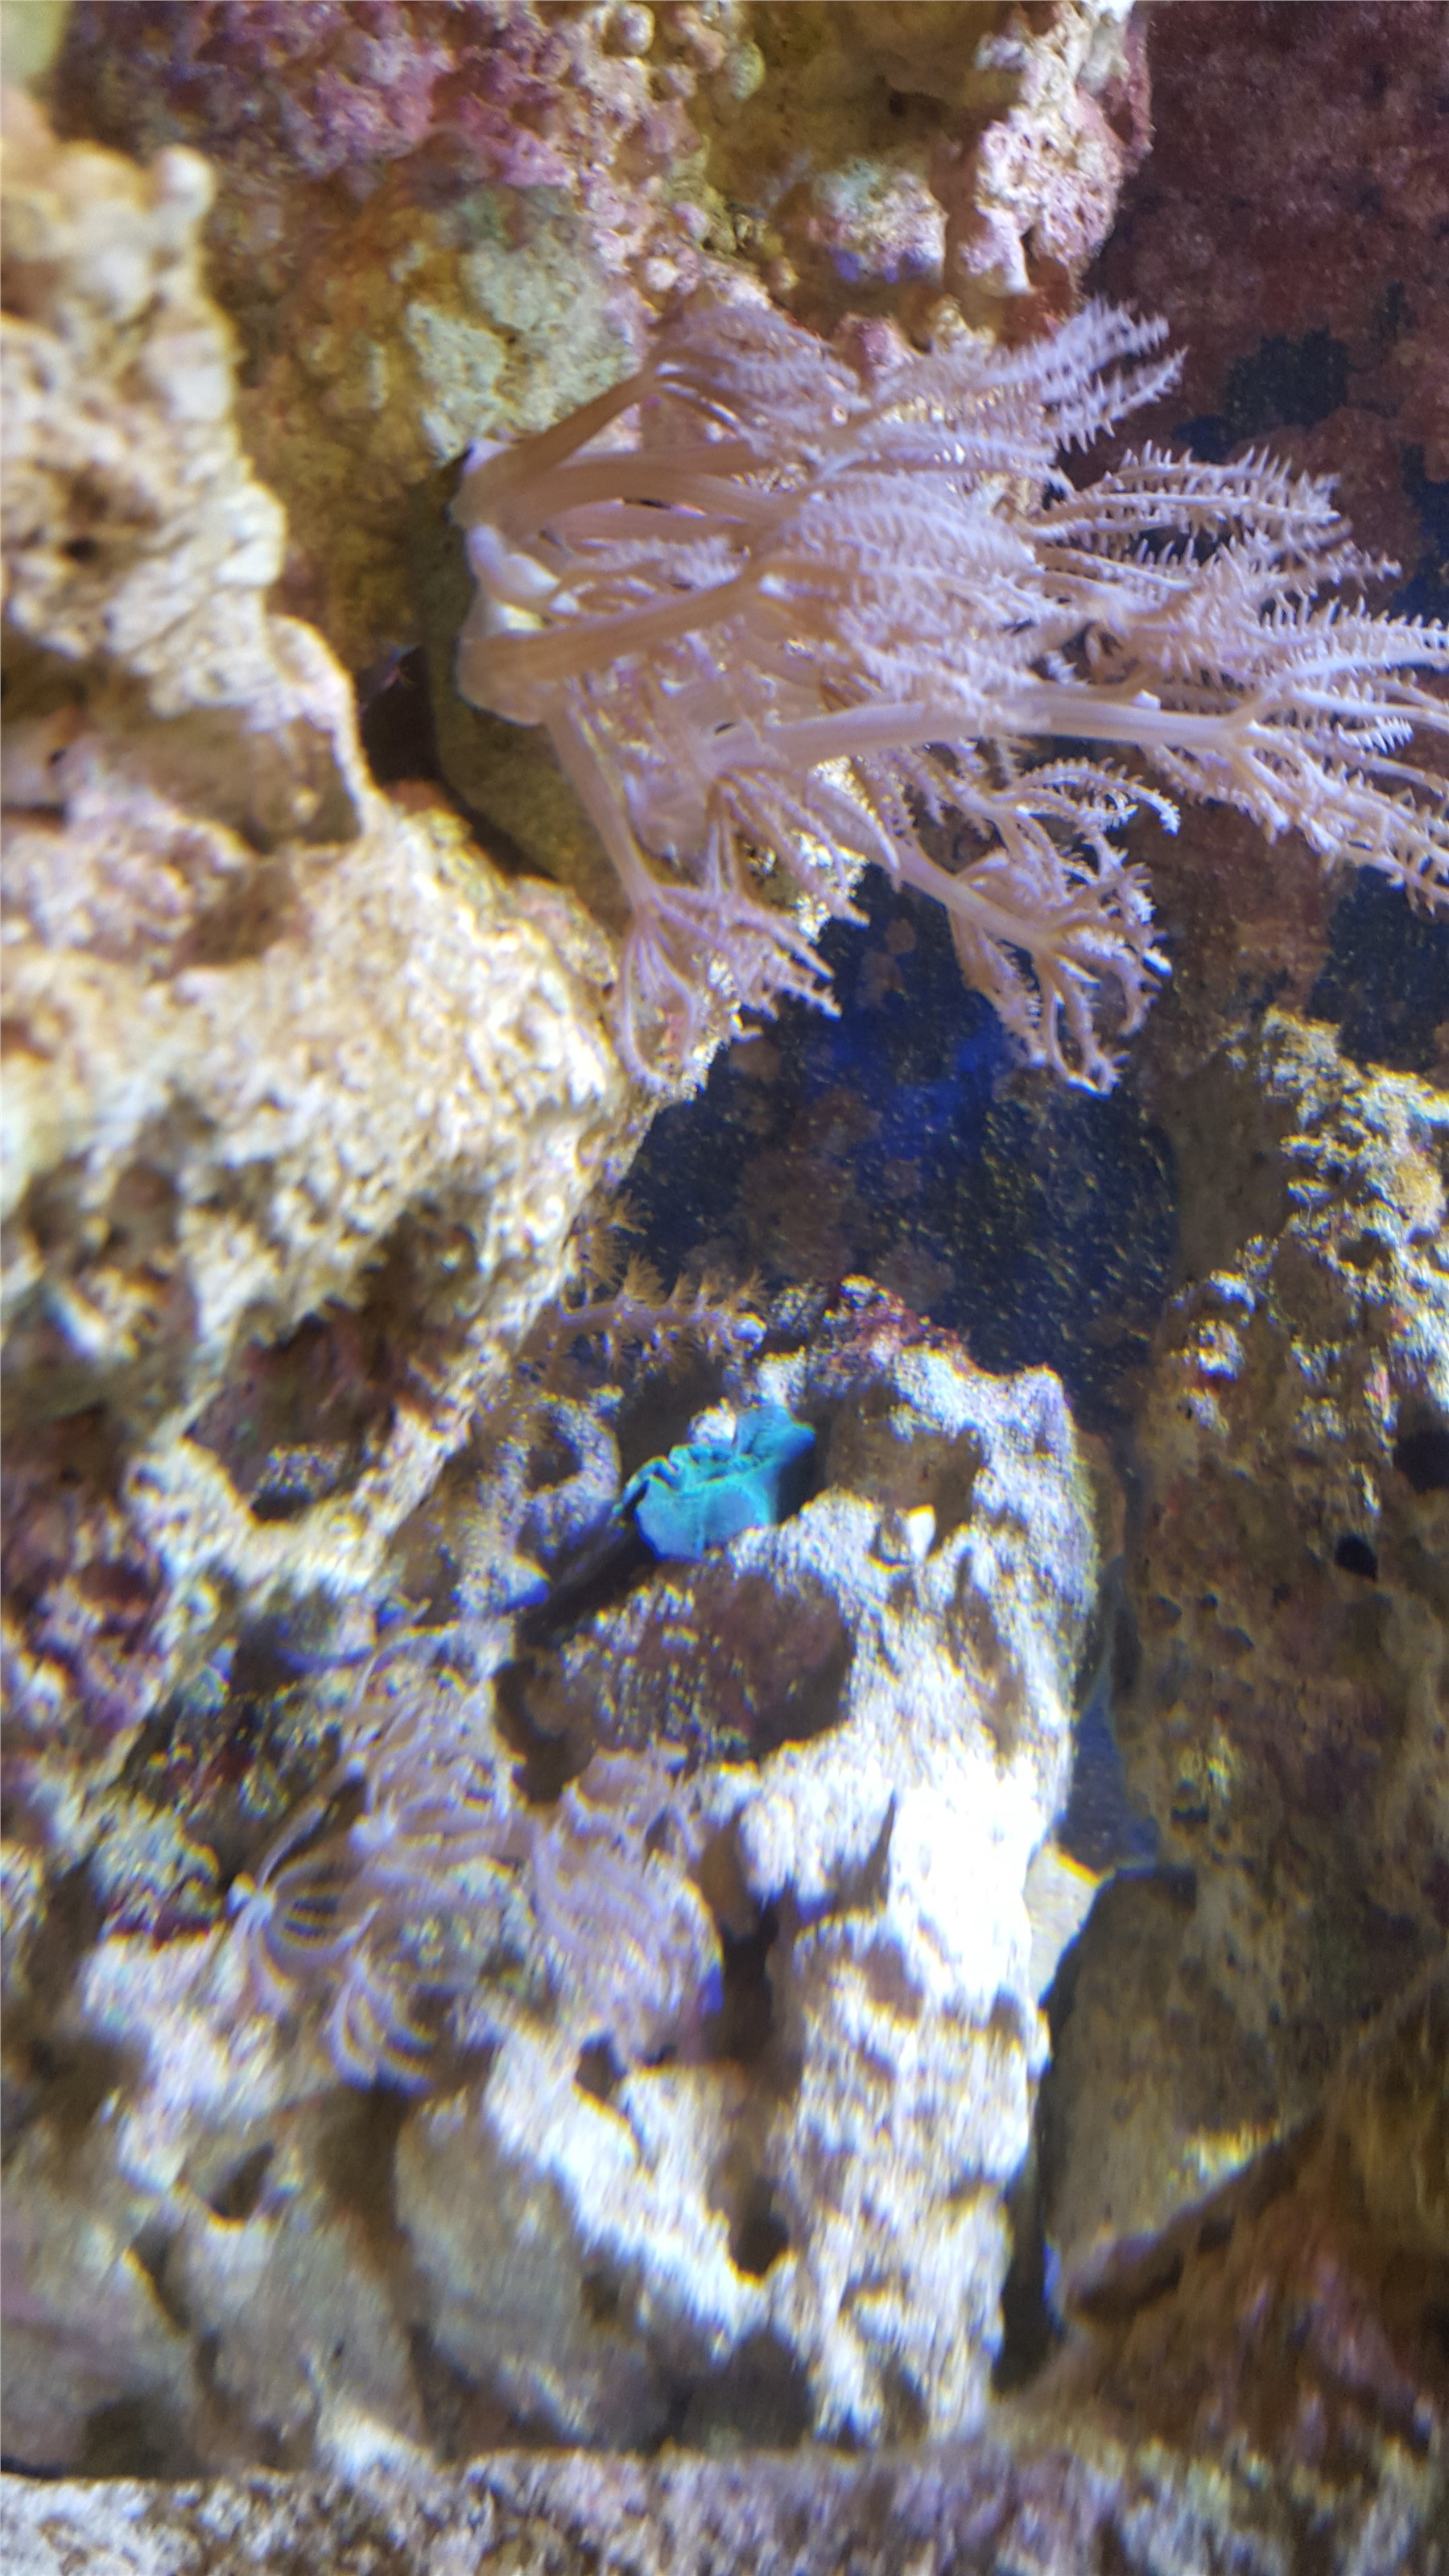 Xenia and a Blue Mushroom Coral